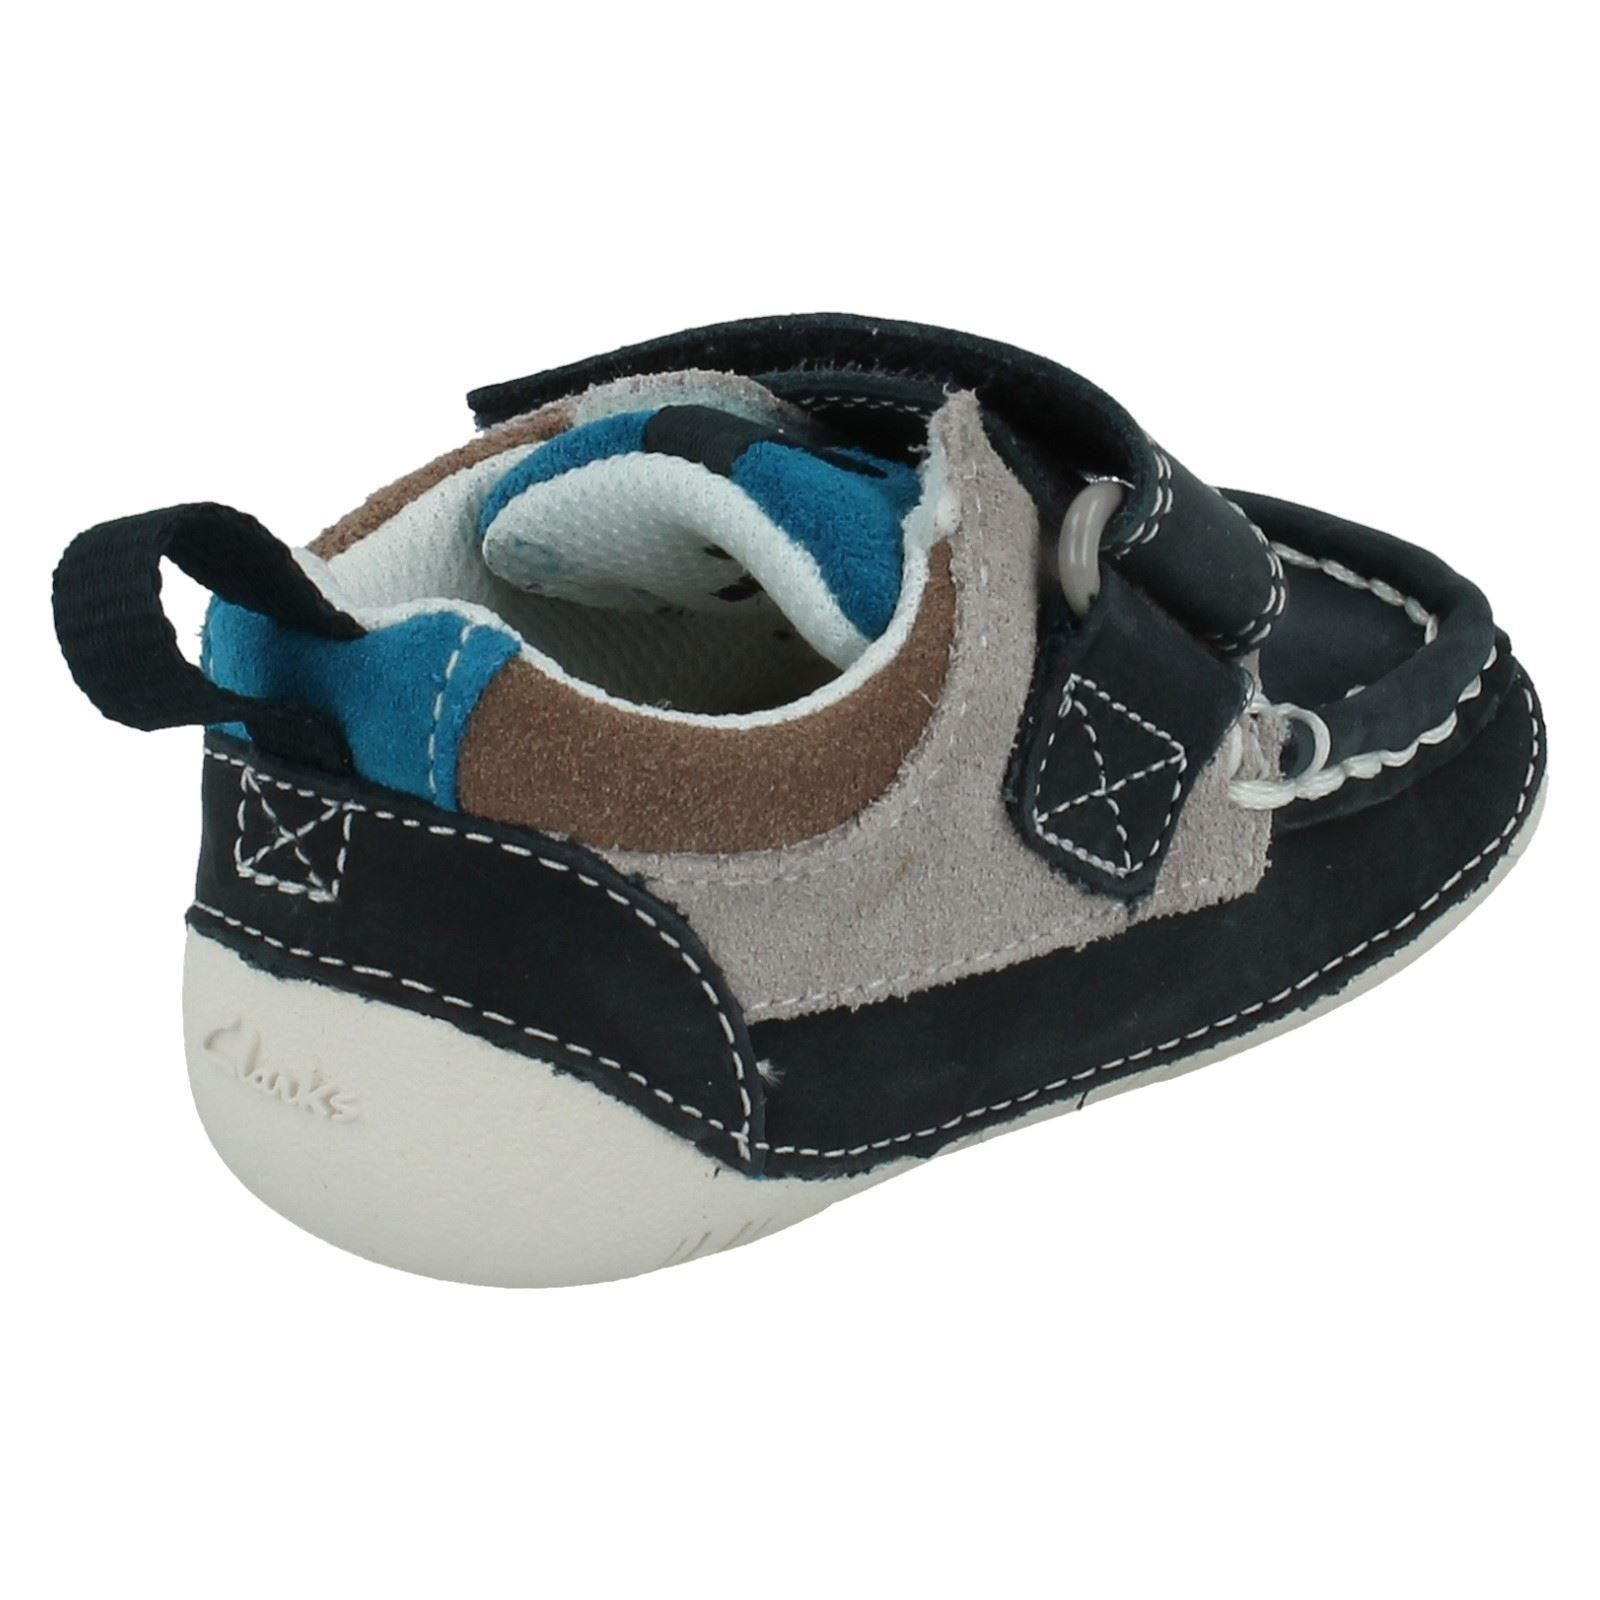 Boys Clarks First Shoes Style - Cruiser Deck